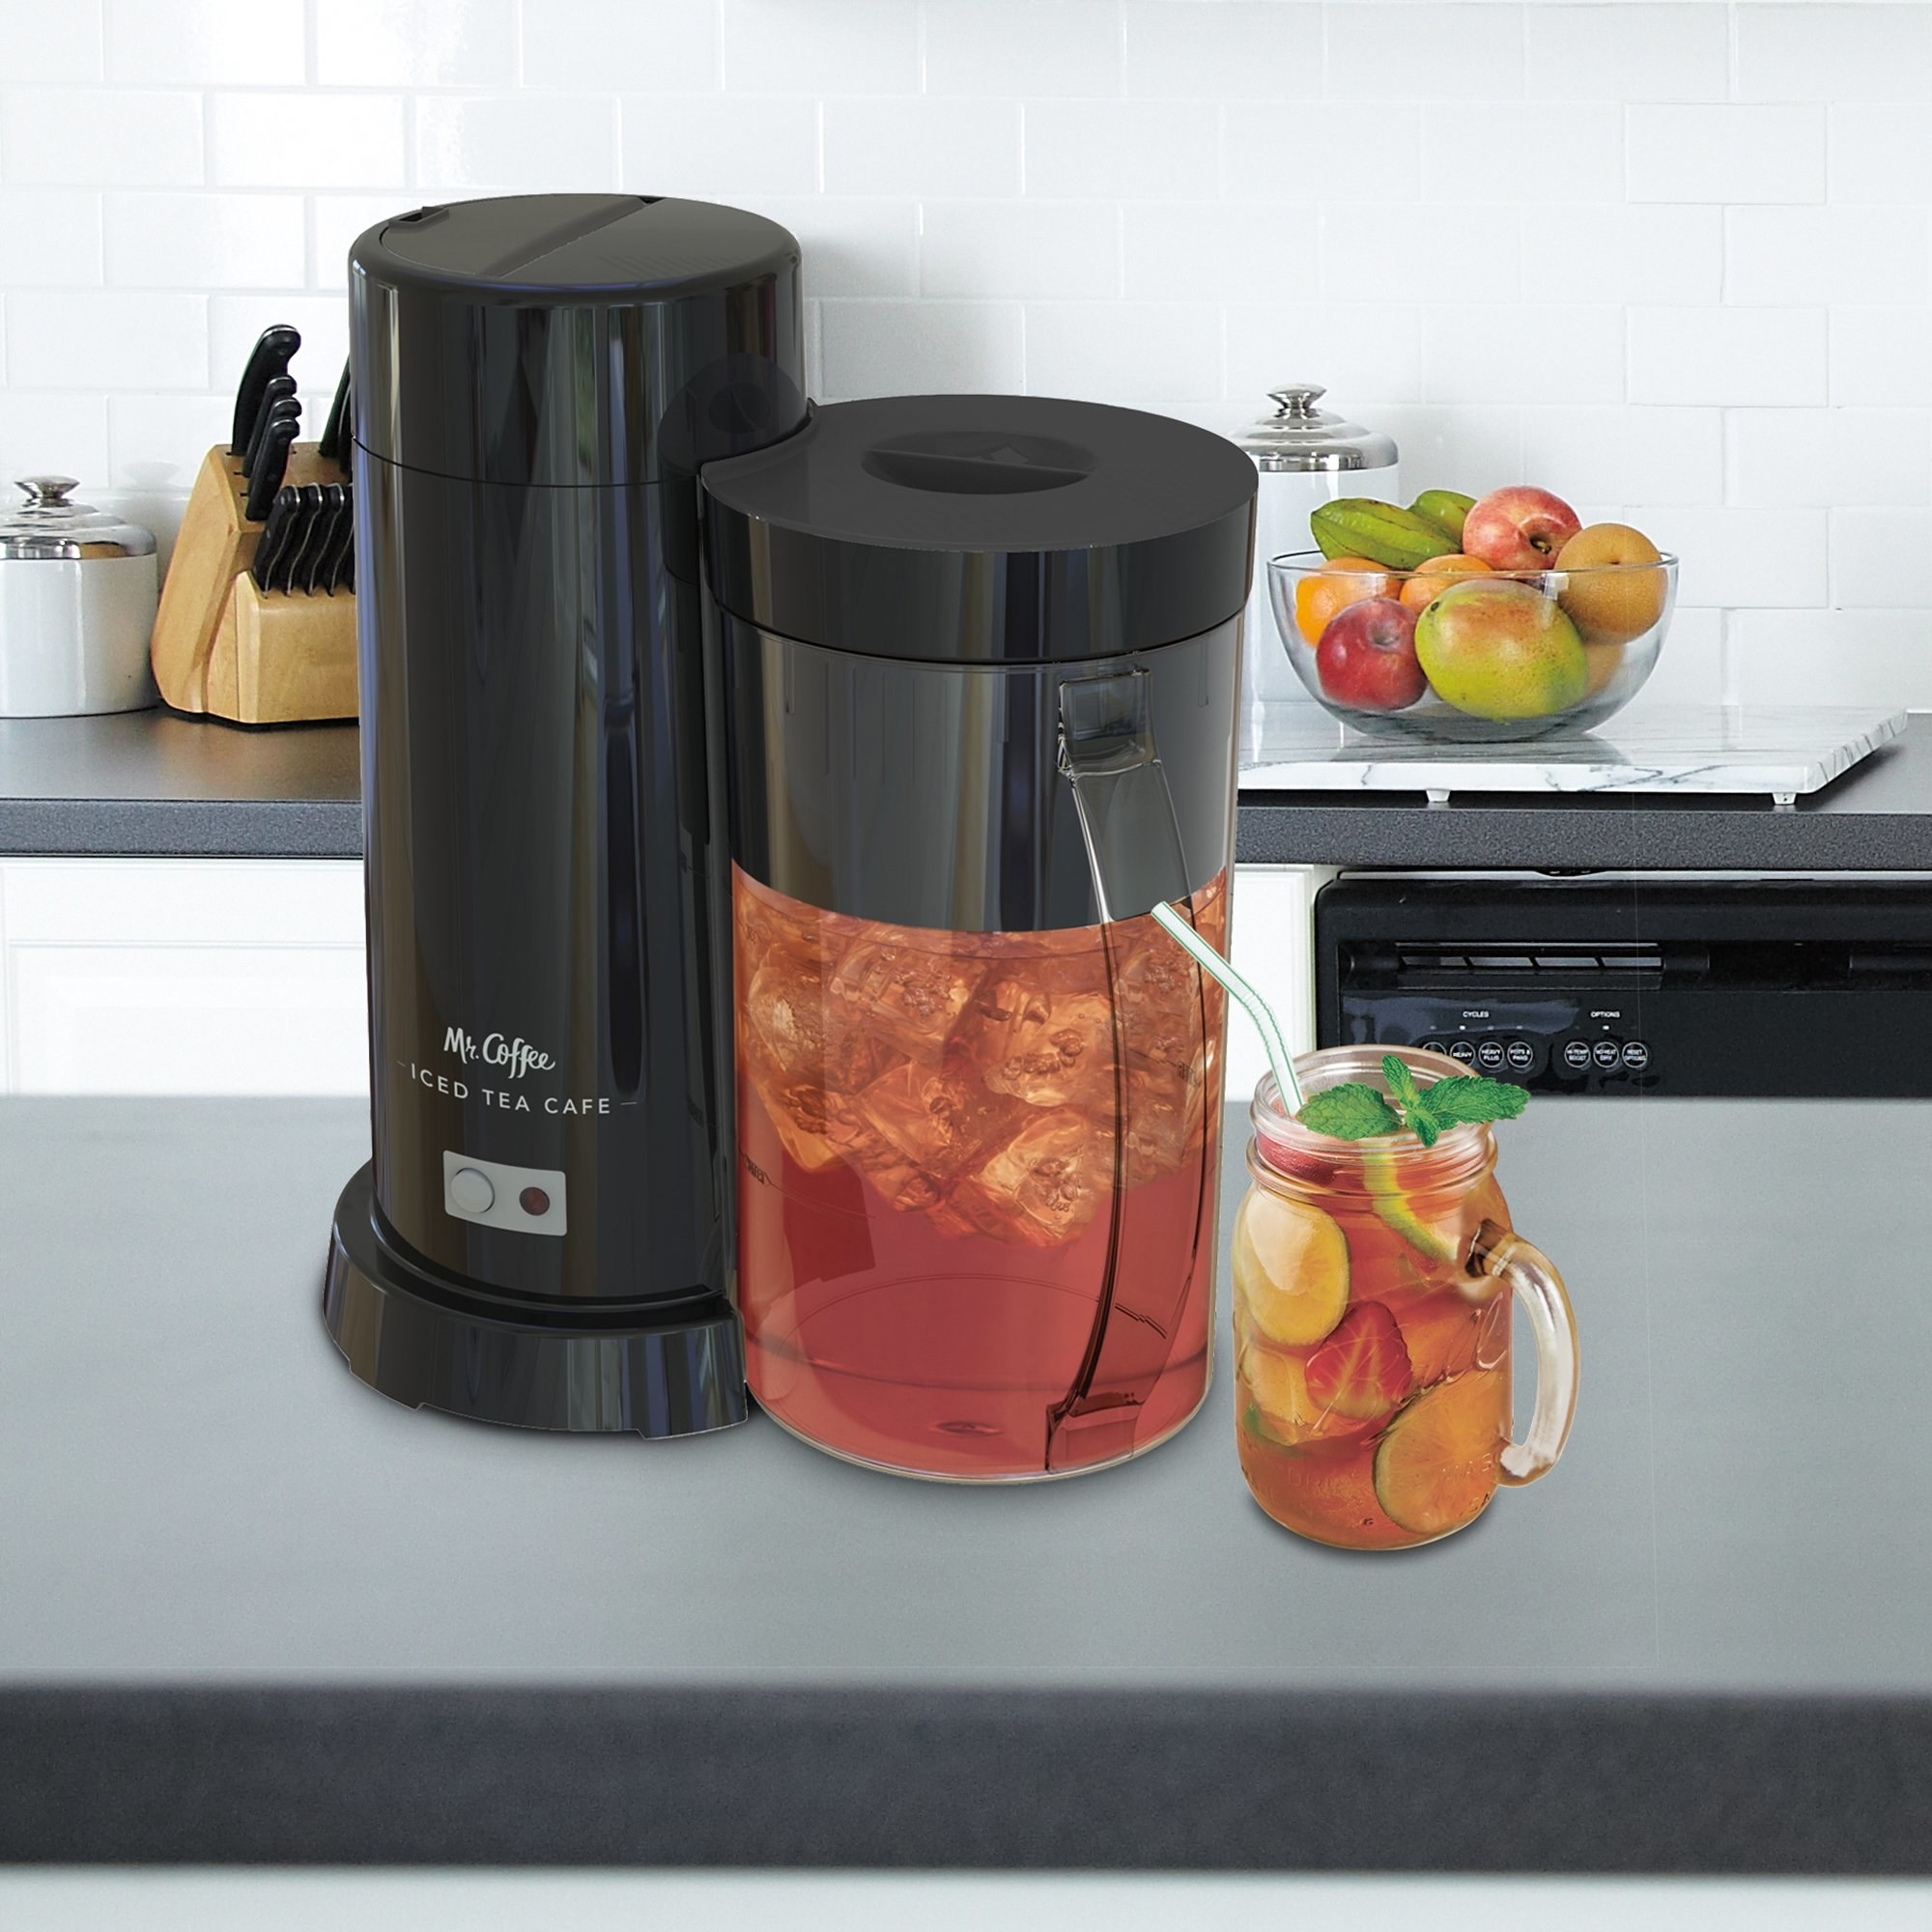 the ice tea and coffee maker